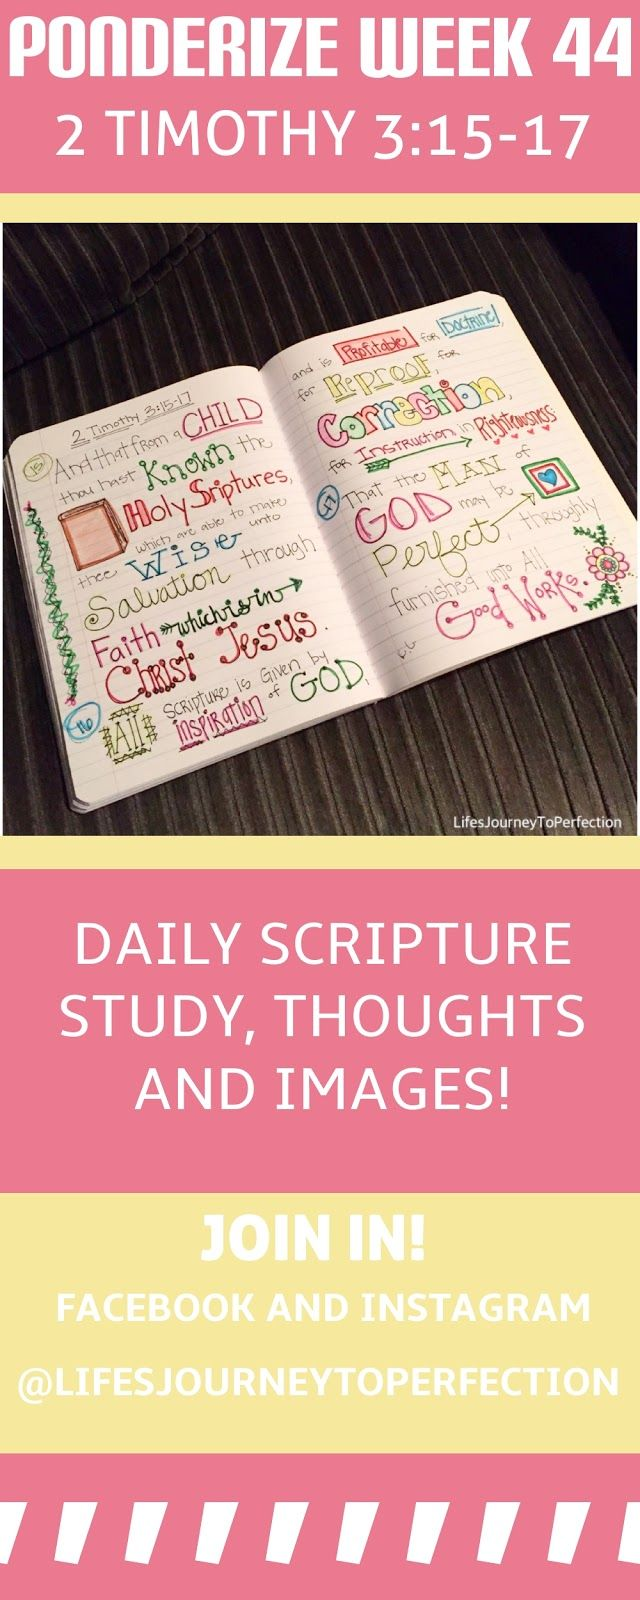 Ponderize Week 44: 2 Timothy 3:15–17 Scripture Study New Testament Scripture Mastery